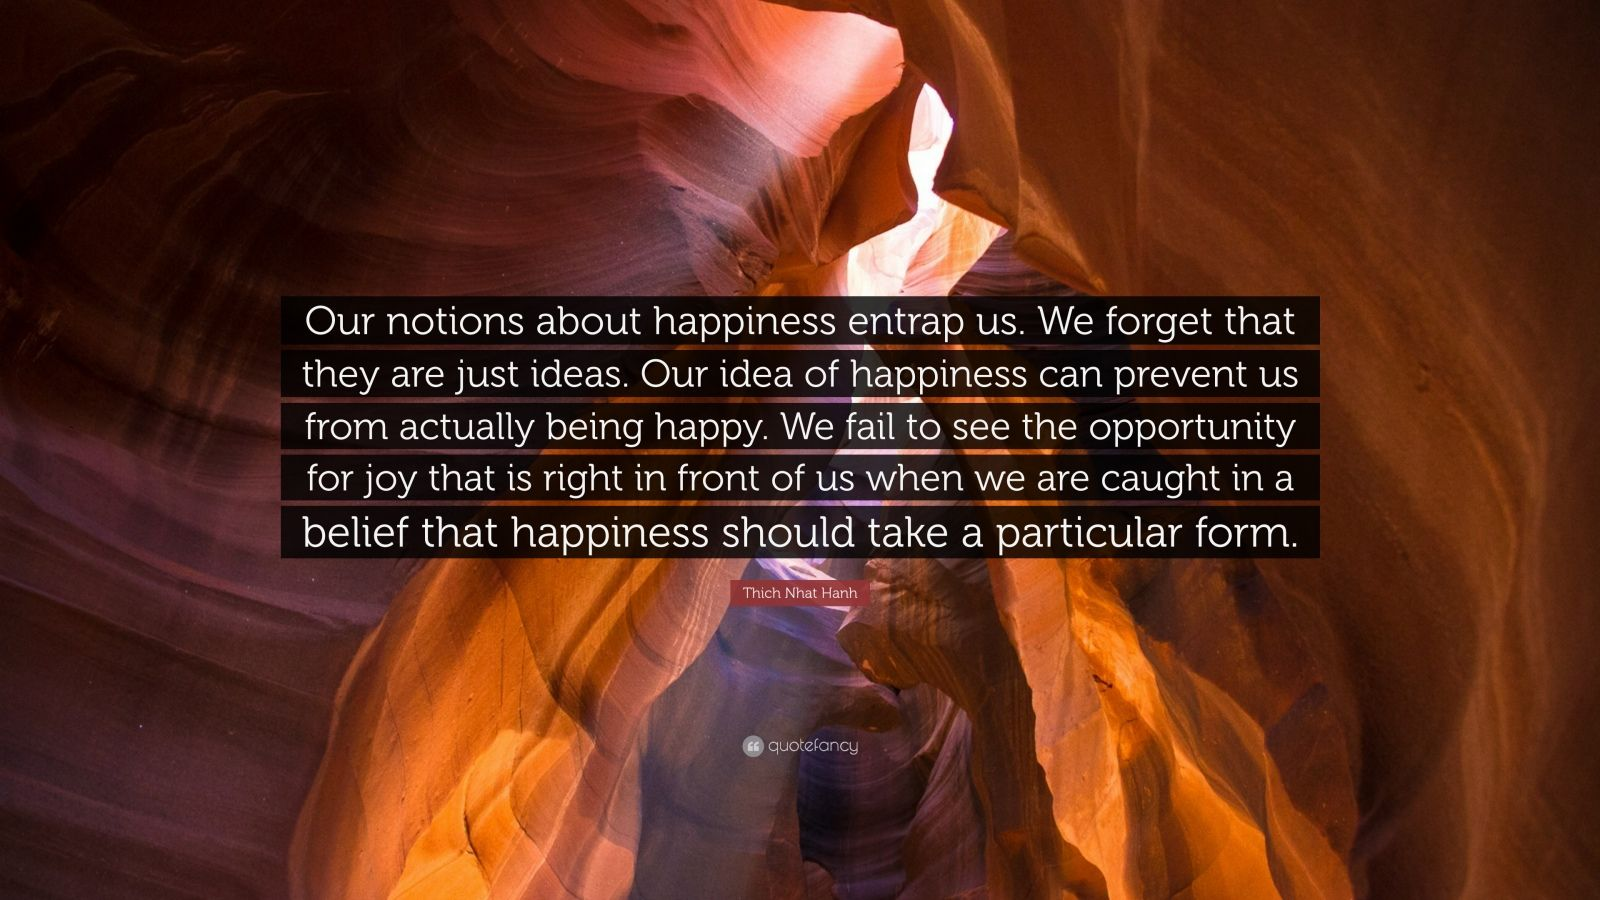 """Thich Nhat Hanh Quote: """"Our notions about happiness entrap us. We forget that they are just ideas. Our idea of happiness can prevent us from actually being happy. We fail to see the opportunity for joy that is right in front of us when we are caught in a belief that happiness should take a particular form."""""""